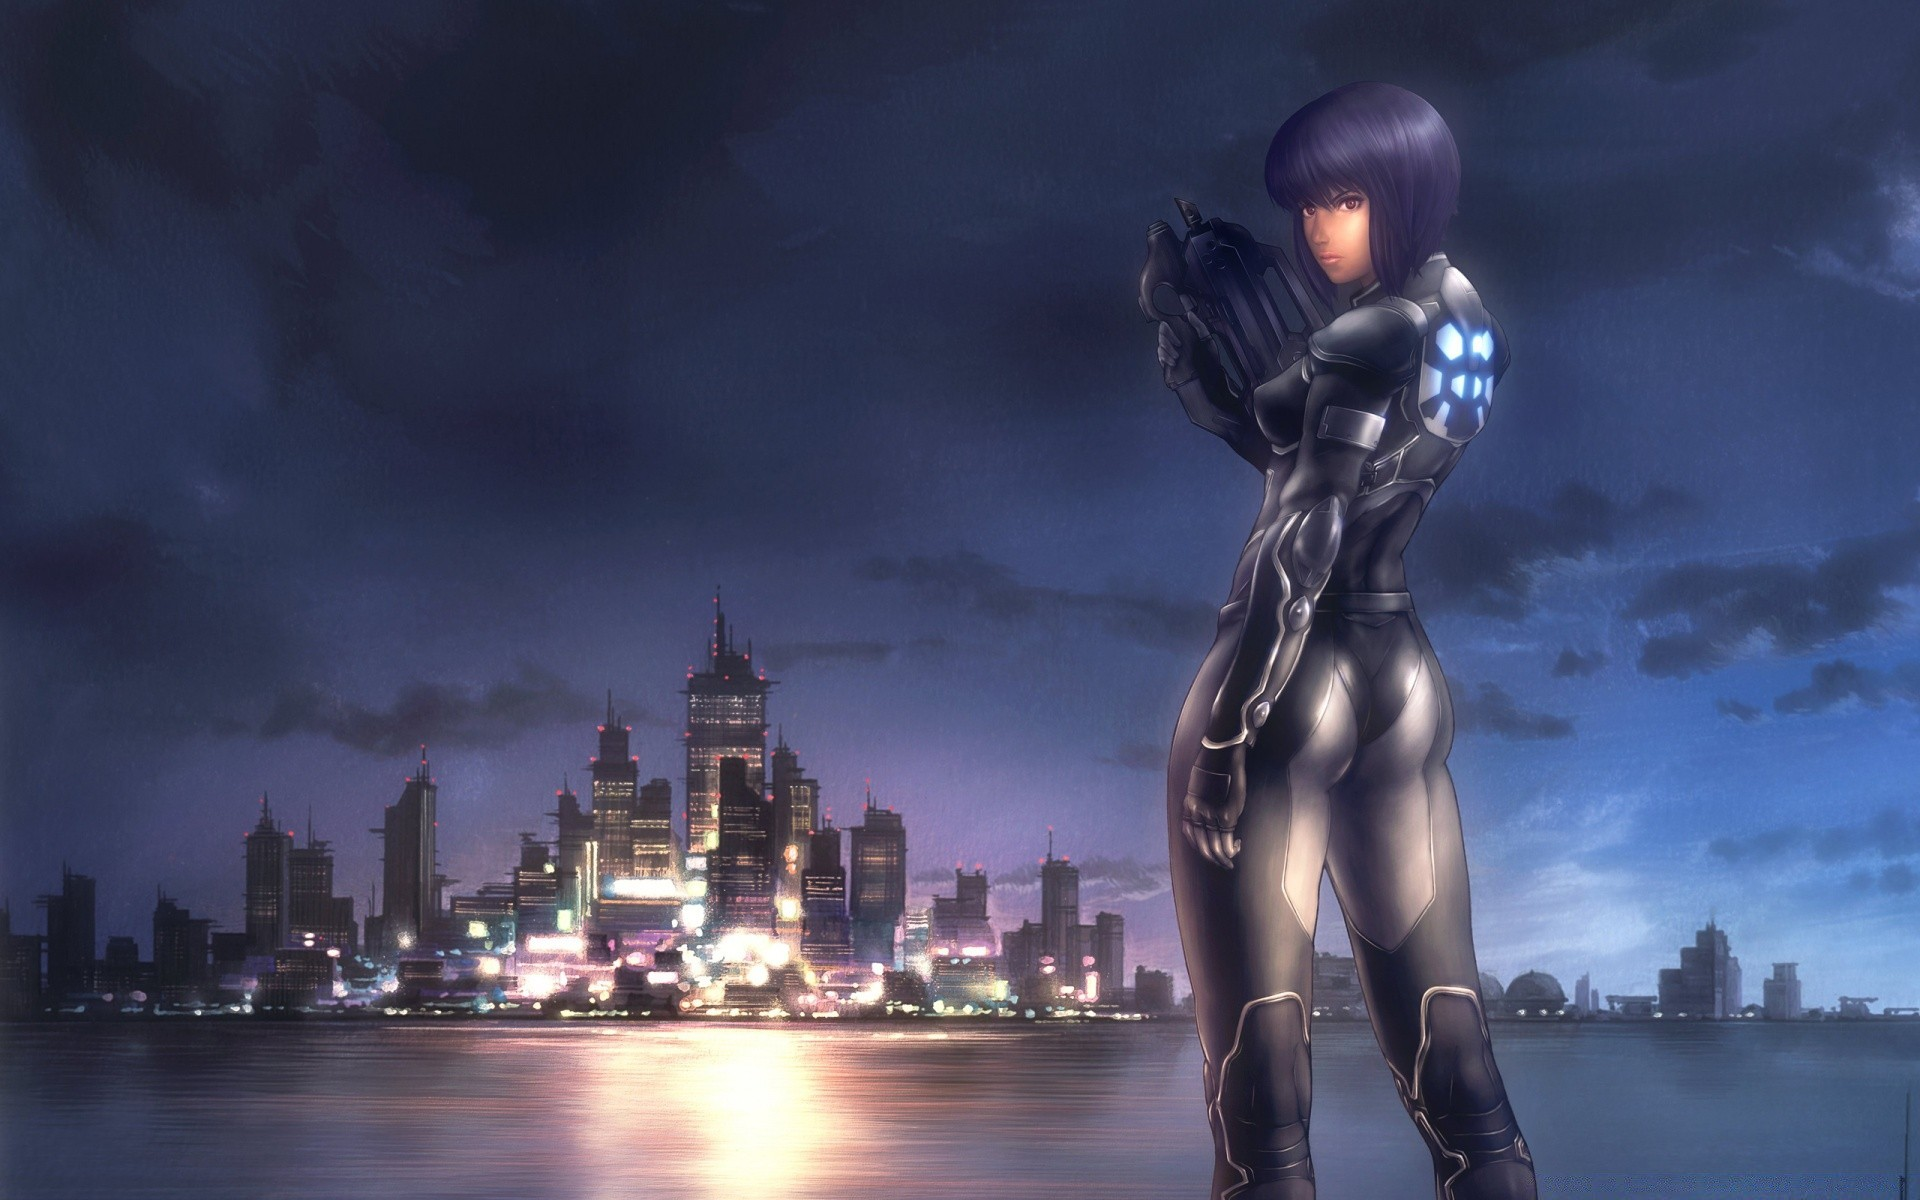 Ghost In The Shell Motoko Kusanagi Android Wallpapers For Free